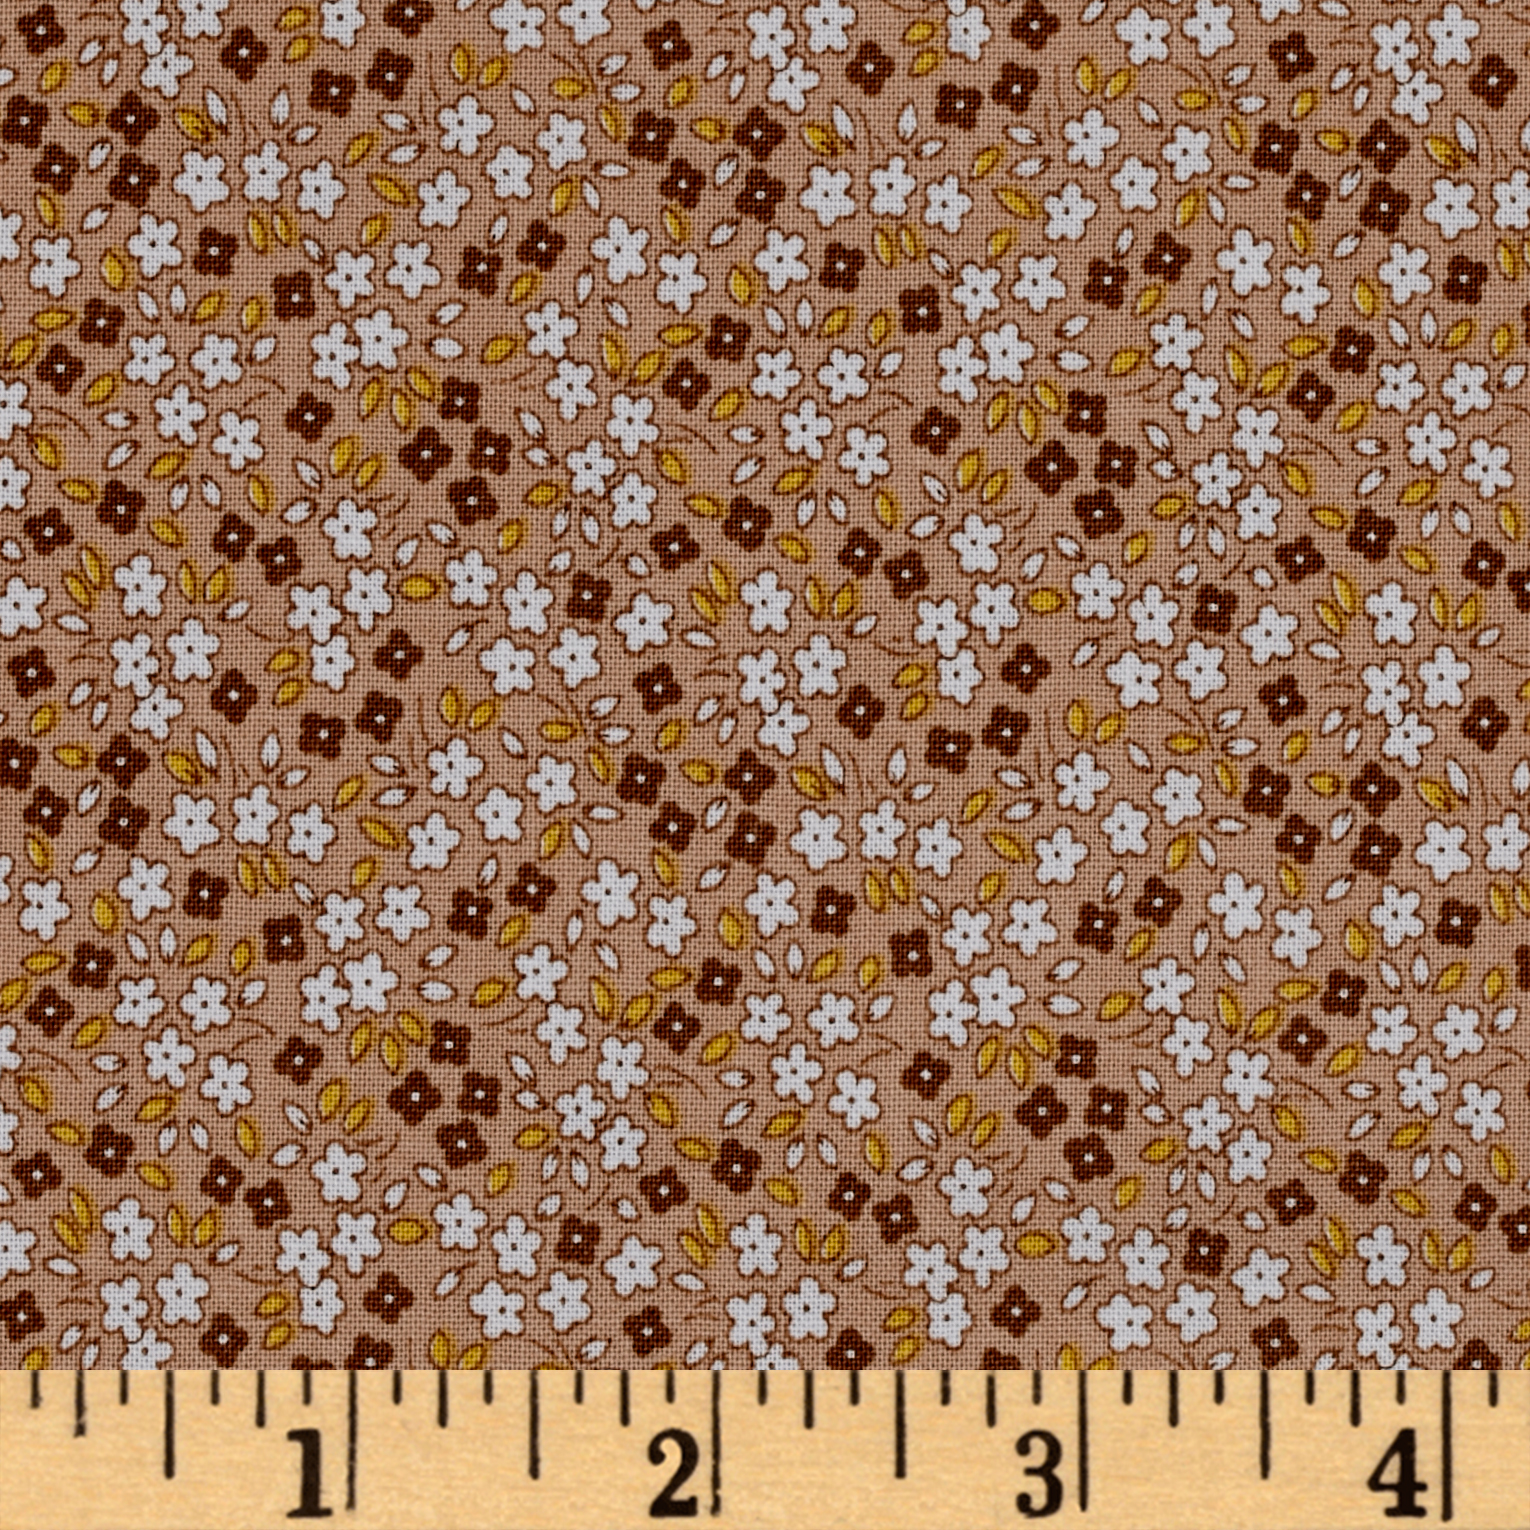 Penny Rose Apple Farm Daisy Brown Fabric by Christensen in USA